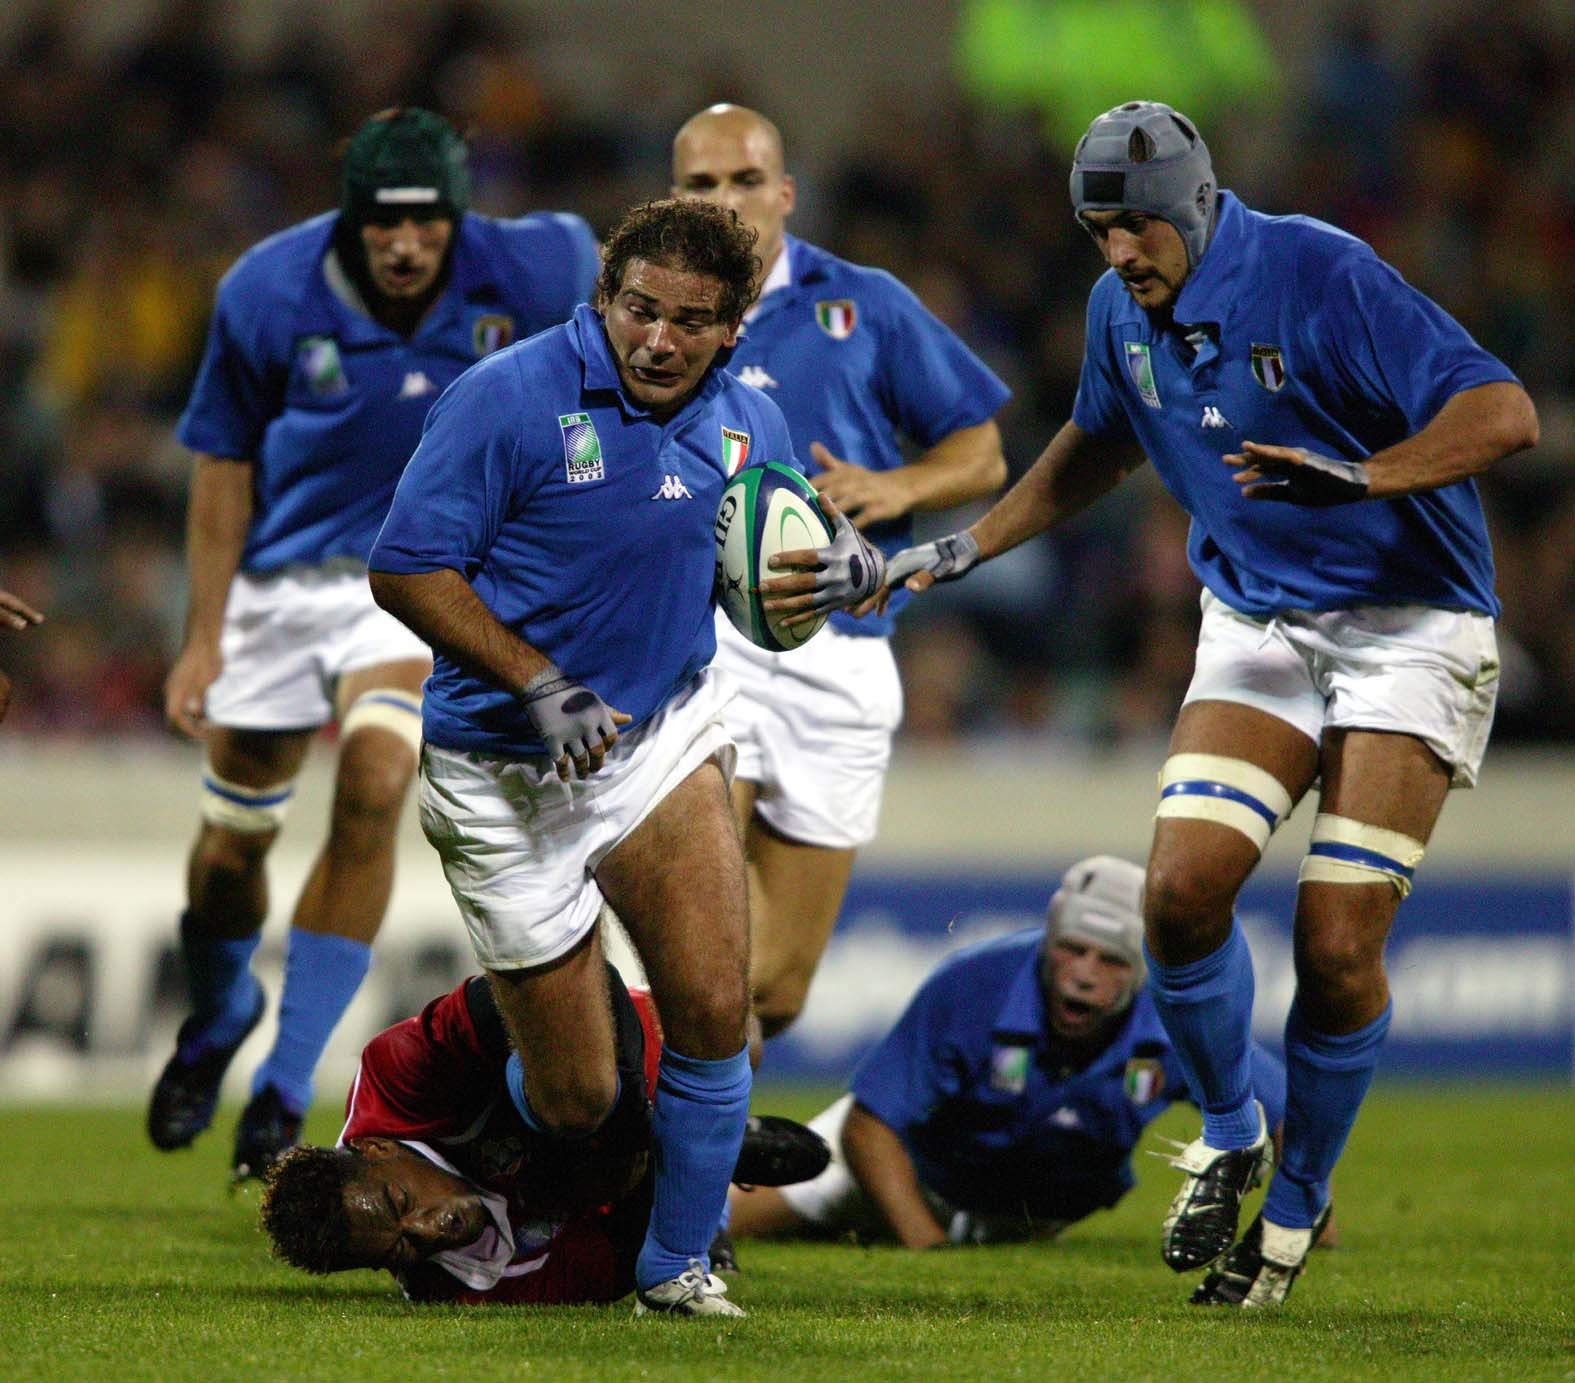 ANDREA DE ROSSI NUOVO TEAM MANAGER DELLE ZEBRE RUGBY a340cabed89